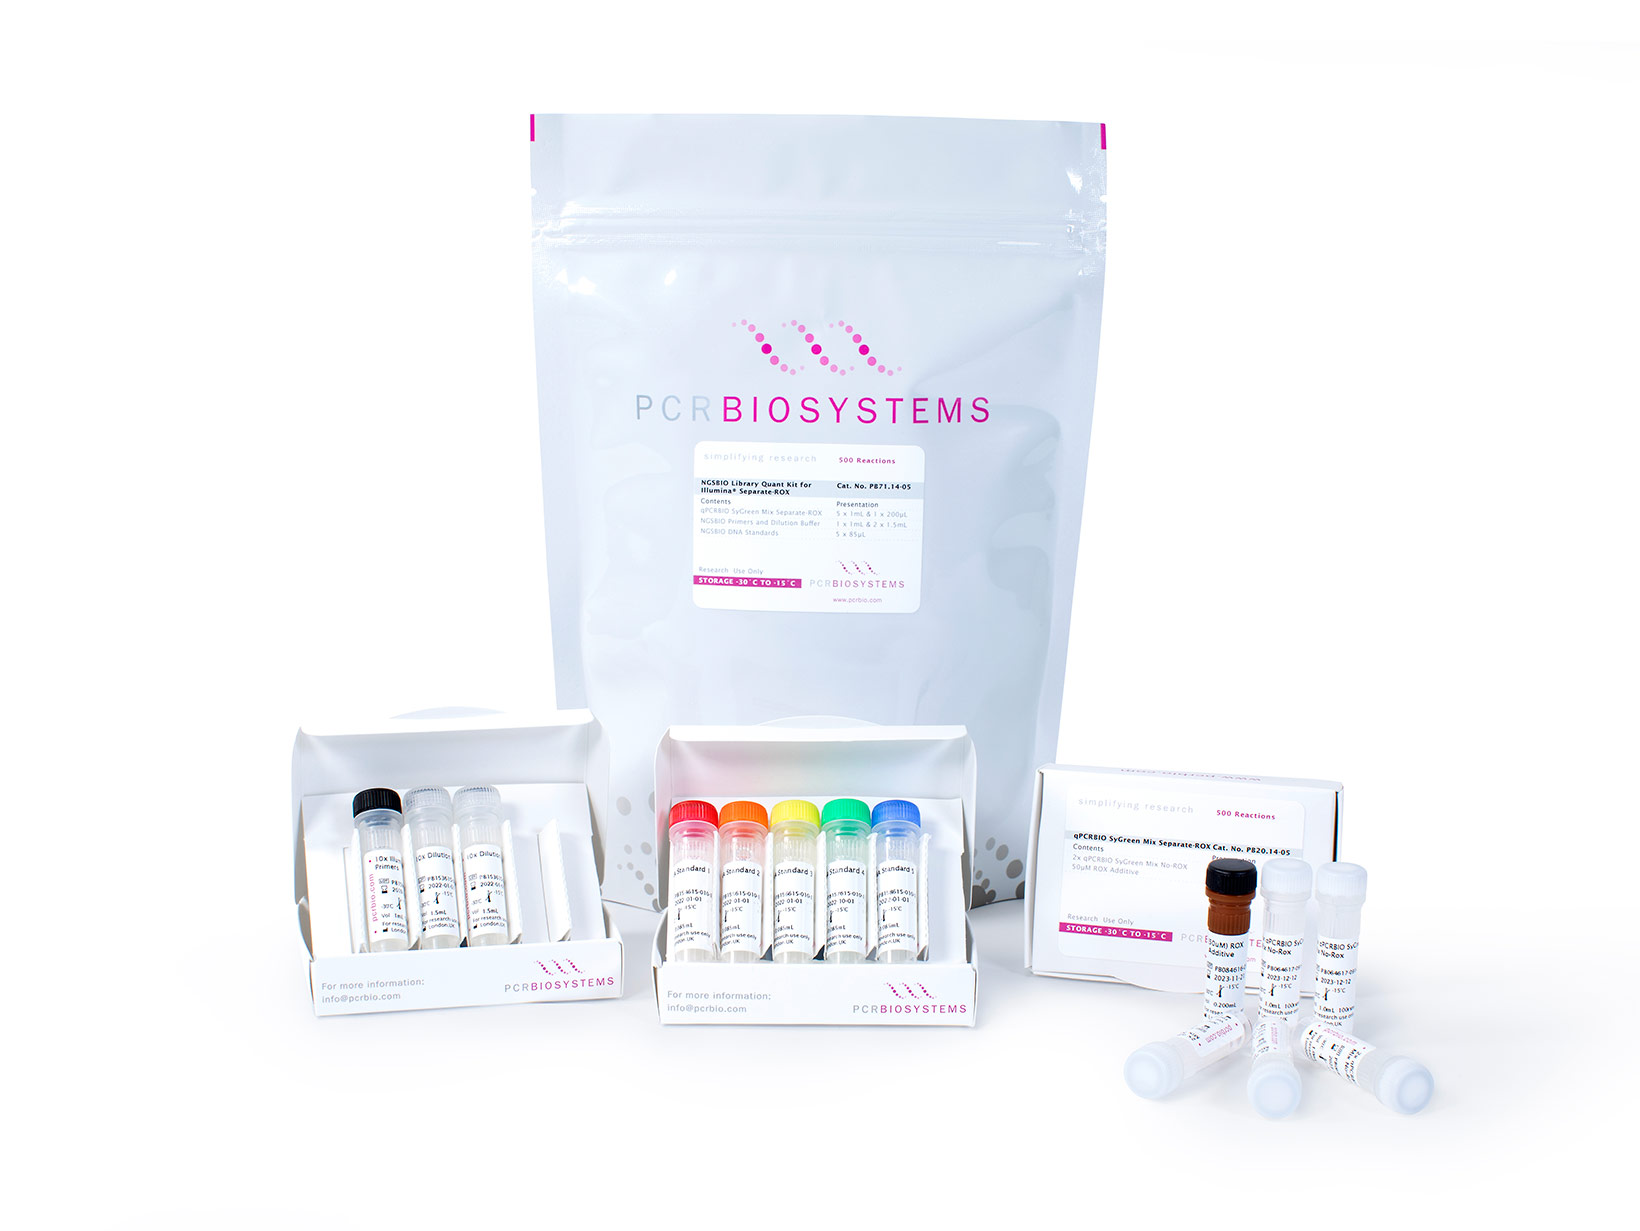 Product image showing NGSBIO Library Quant Kit for Illumina Separate-ROX 500 reactions